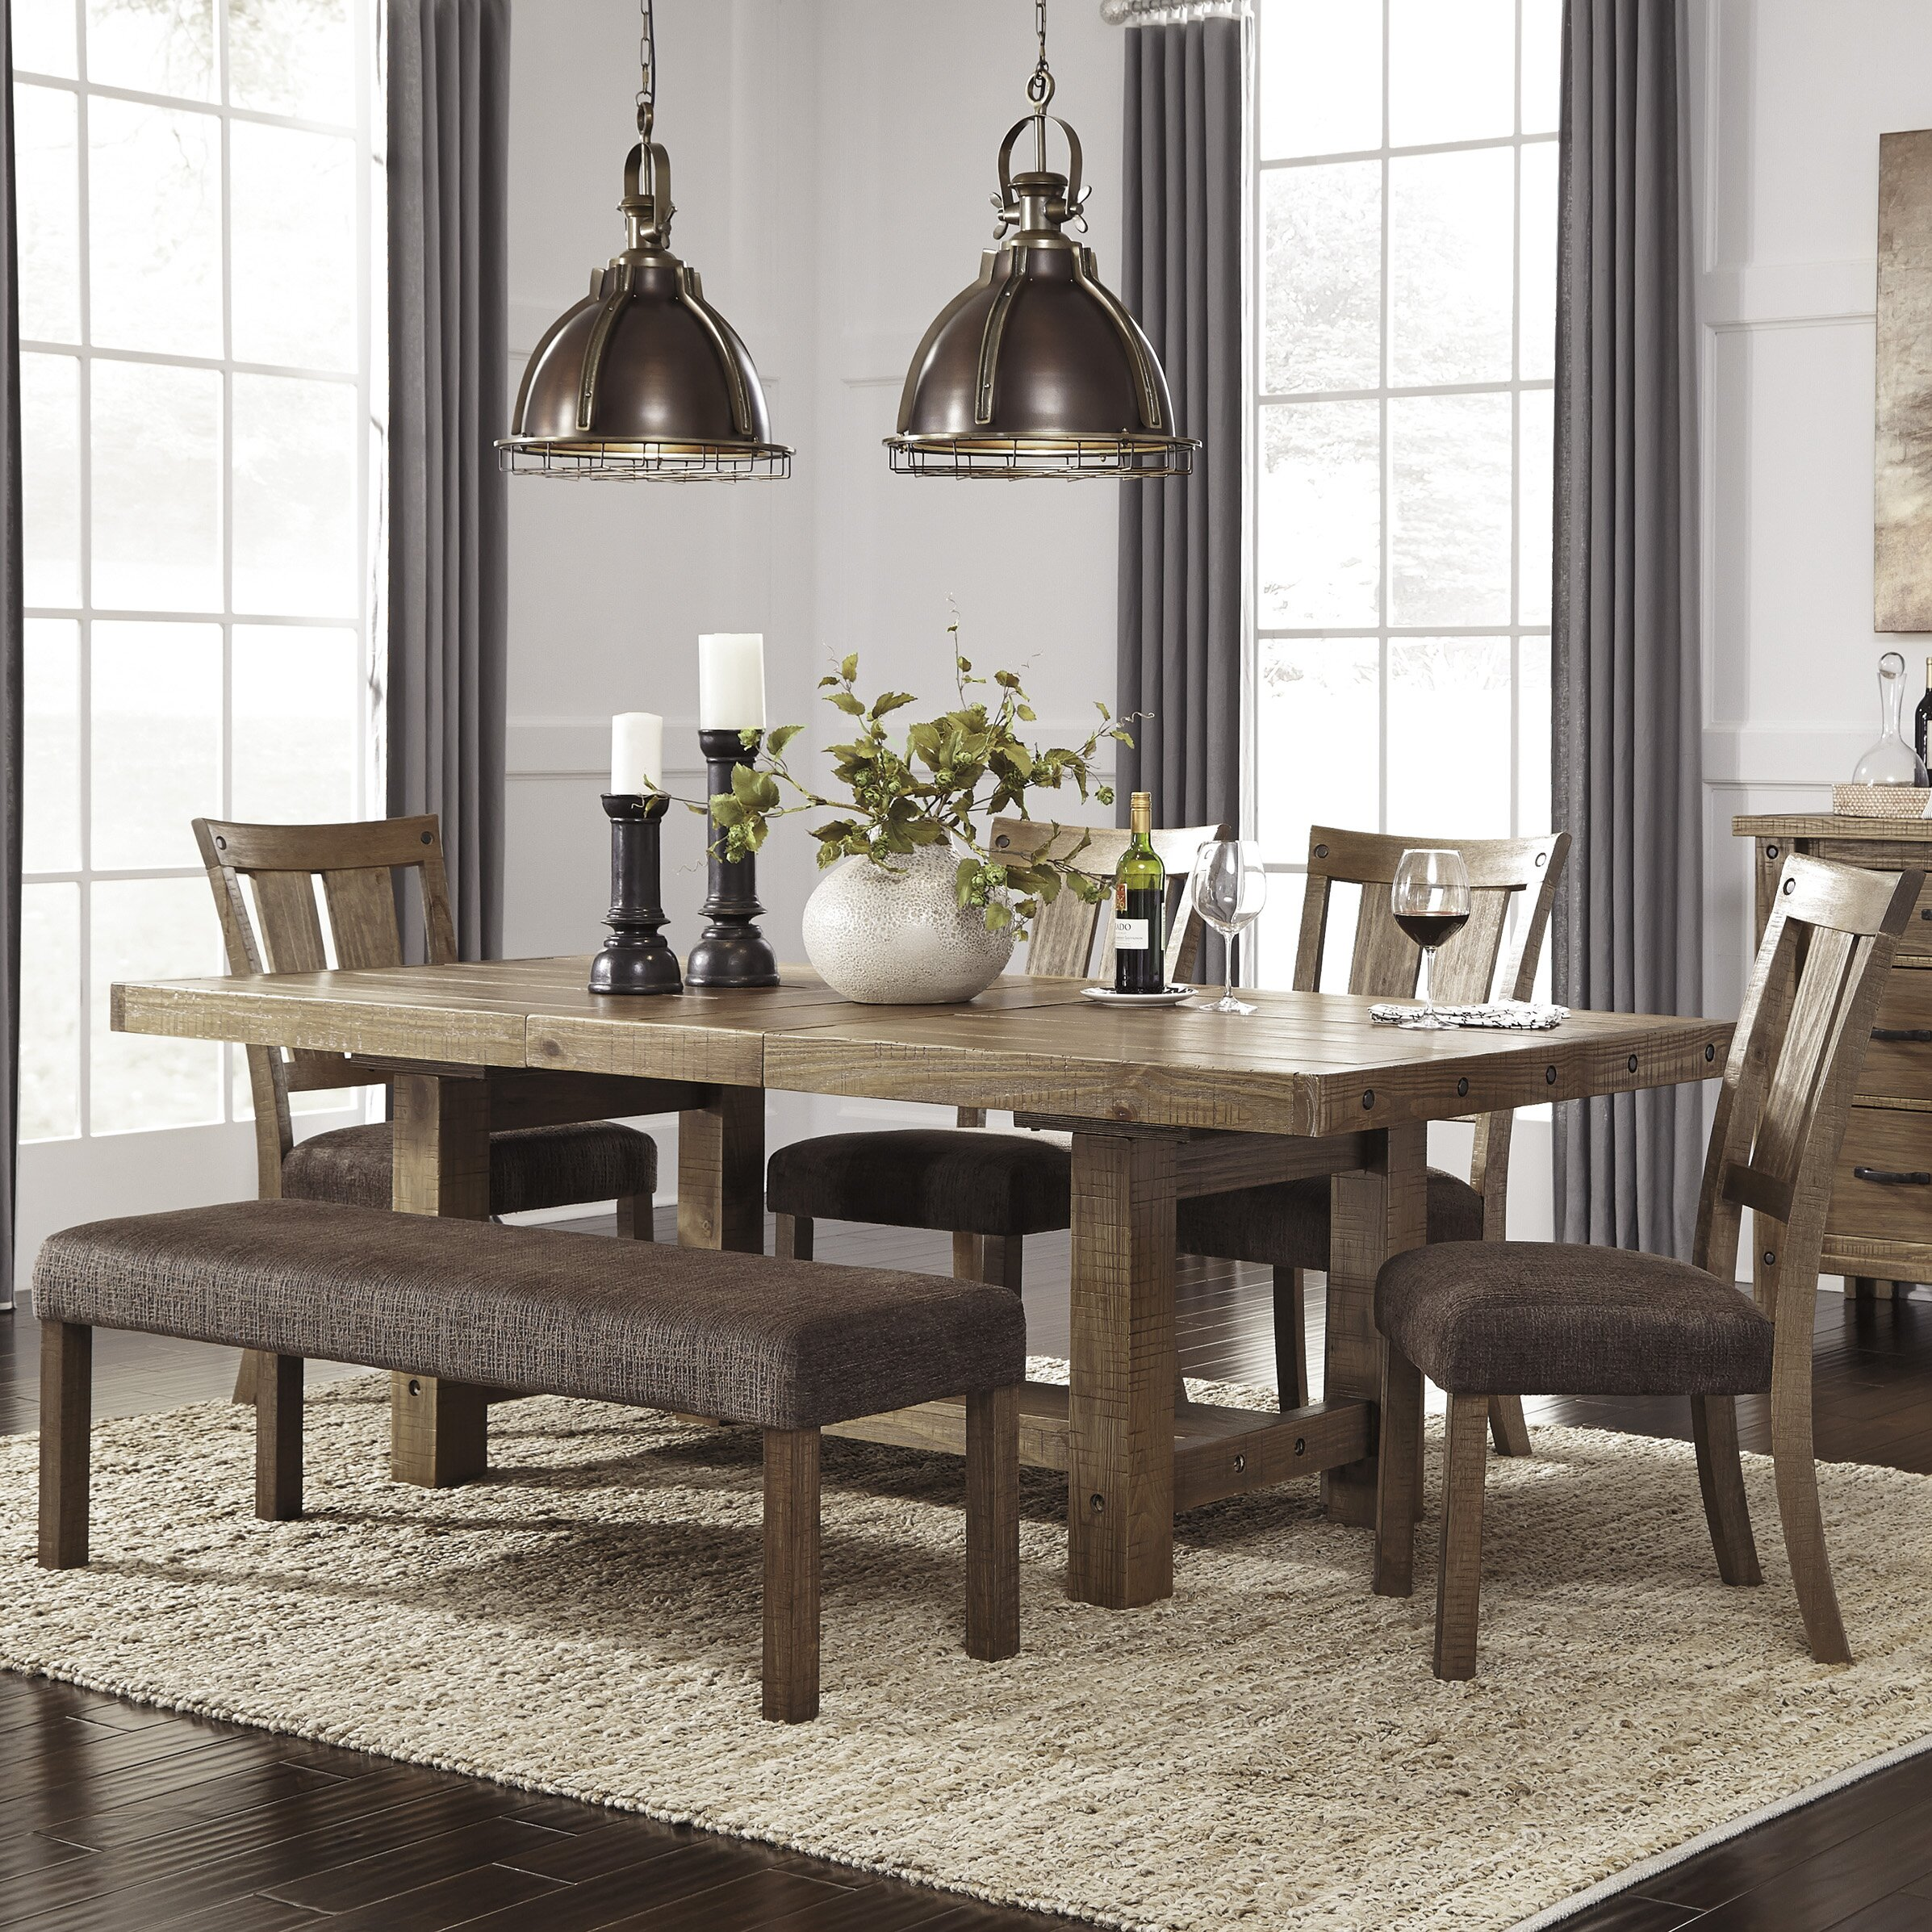 Signature design by ashley 9 piece dining set reviews for Kitchen dining room furniture